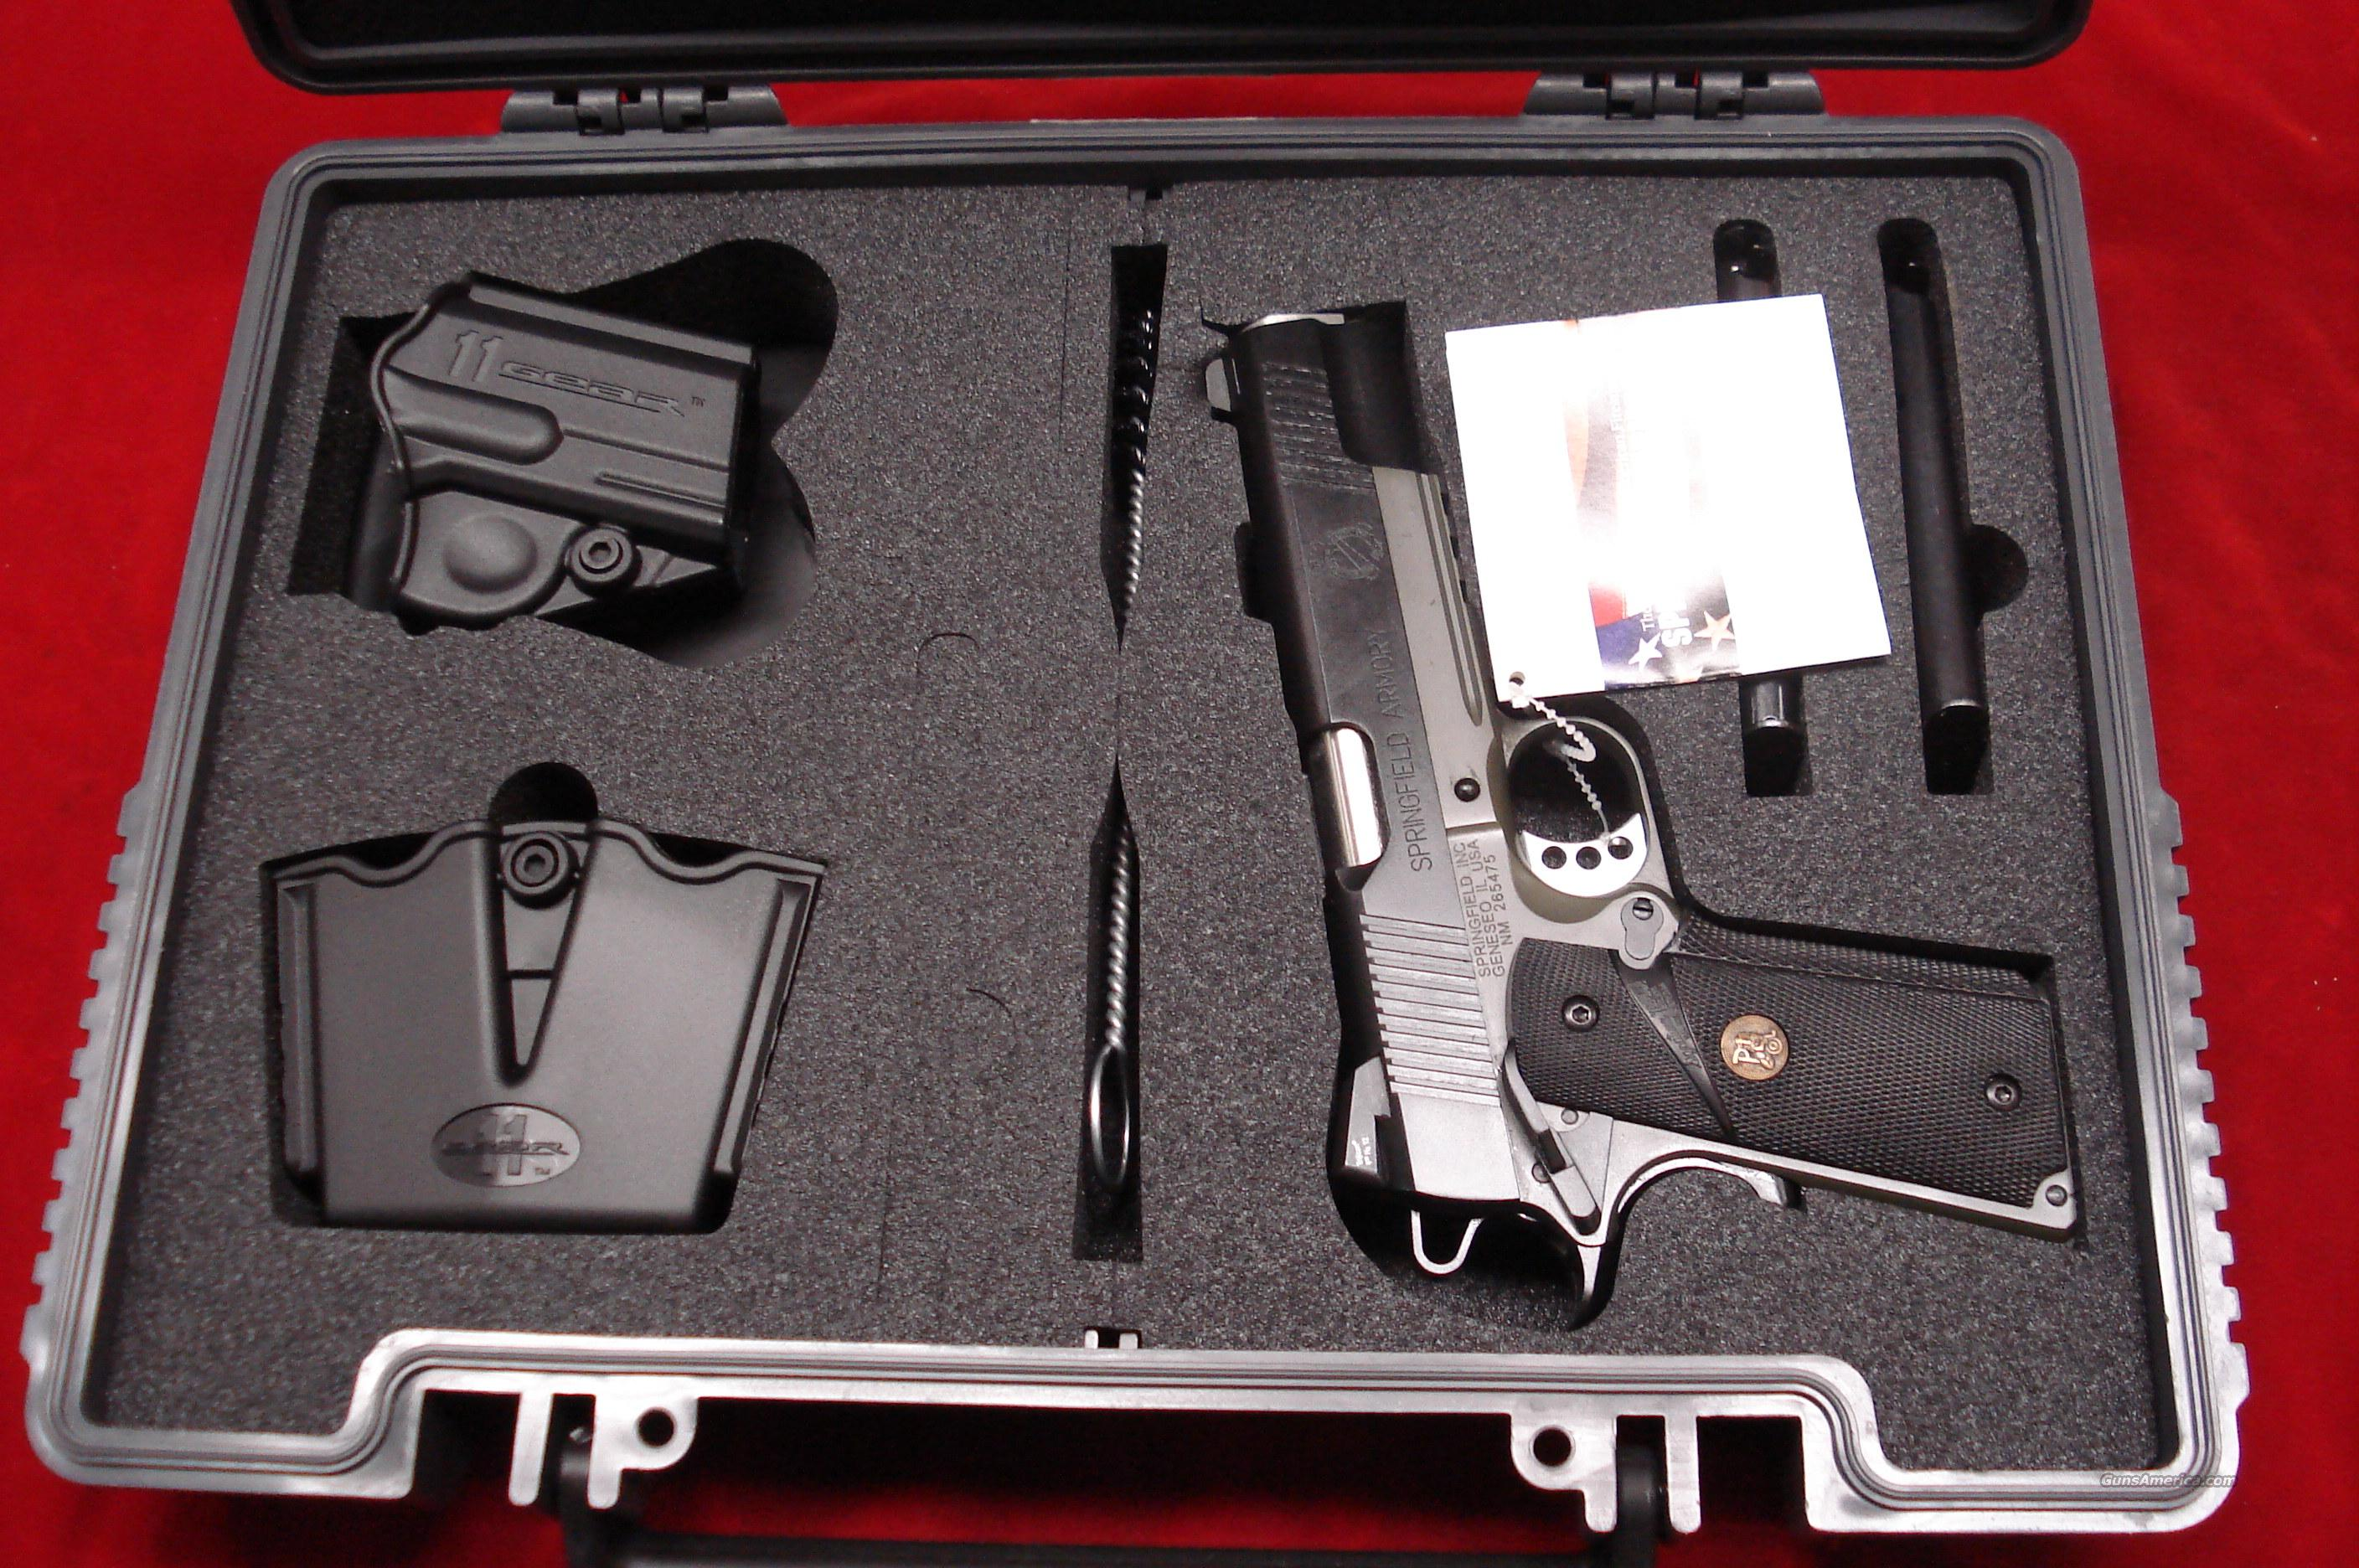 SPRINGFIELD ARMORY LOADED MC OPERATOR 45ACP W/NIGHT SIGHTS  NEW  (PX9105MLP)  Guns > Pistols > Springfield Armory Pistols > 1911 Type